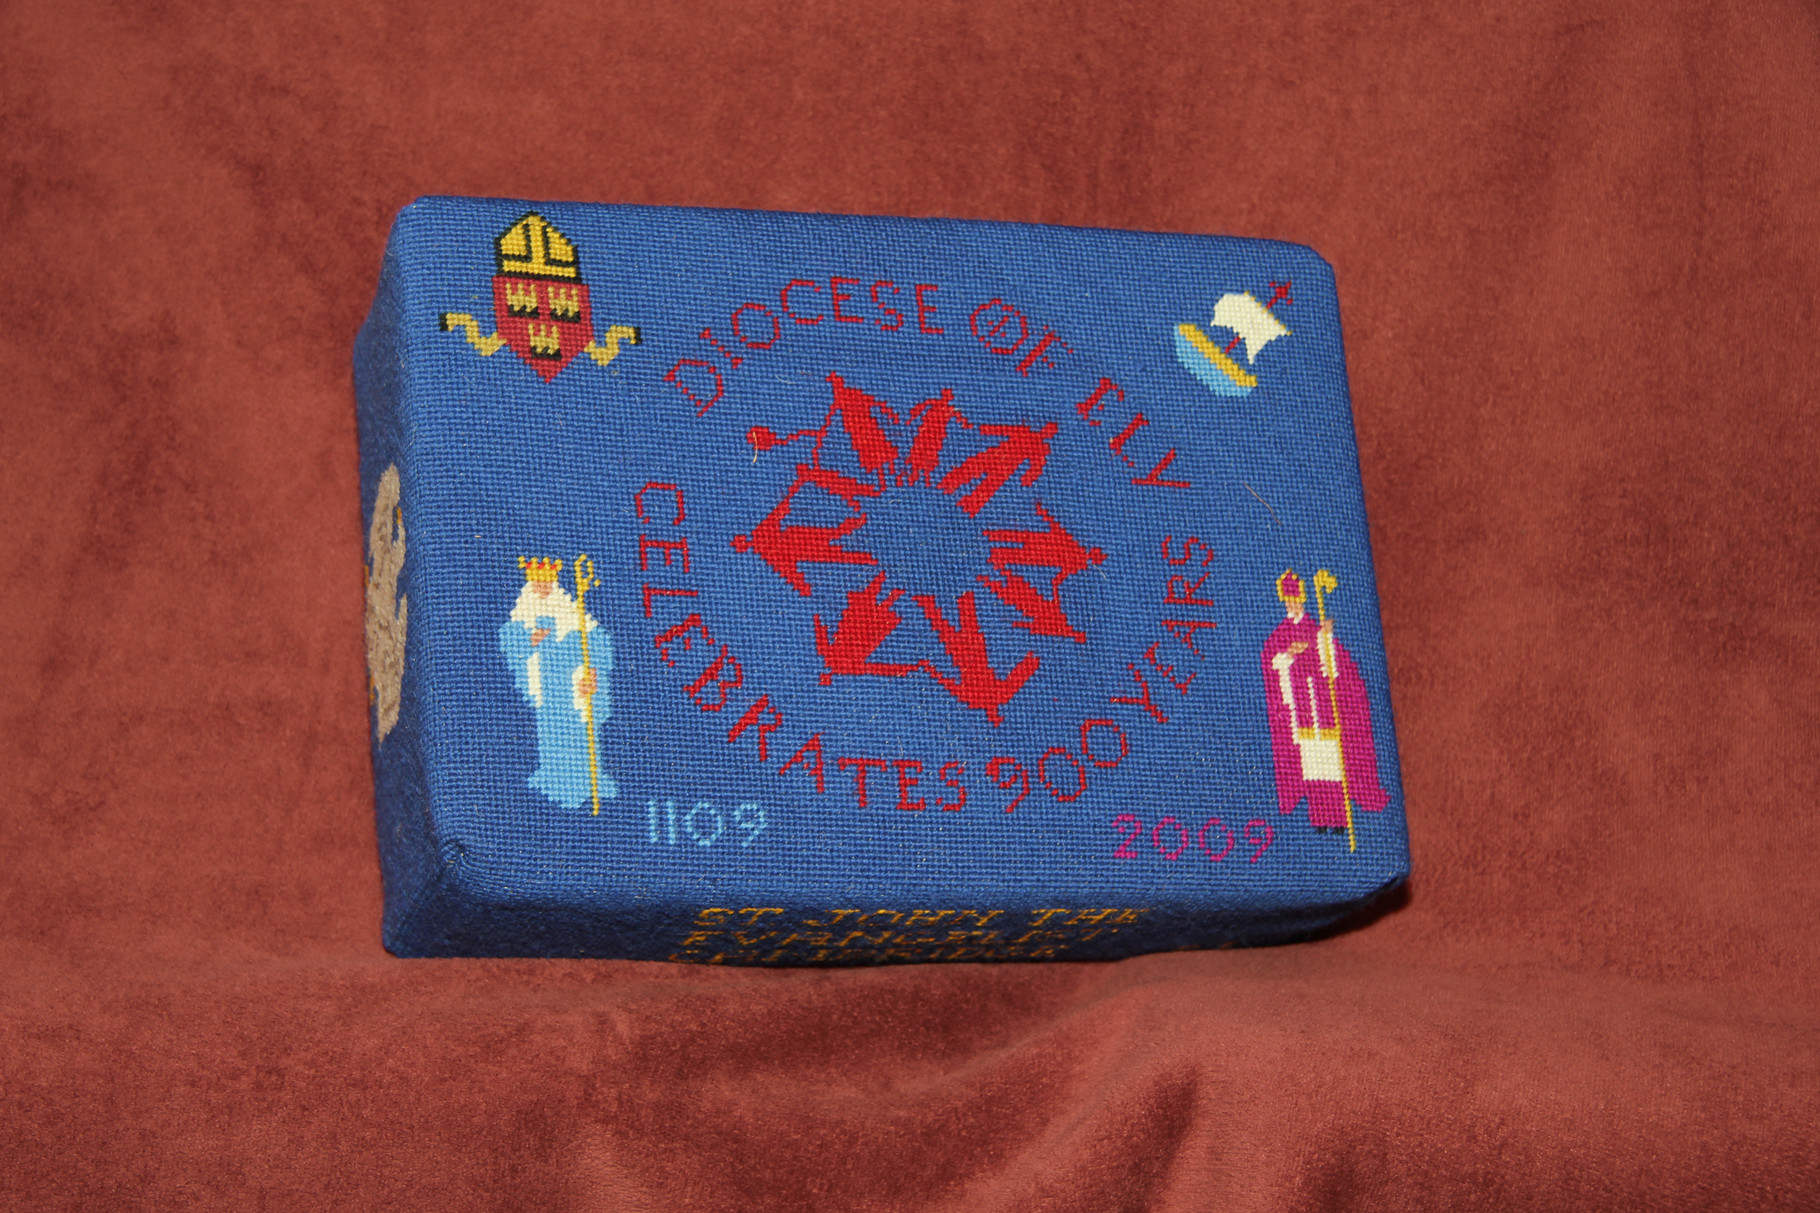 74. The Diocese of Ely celebrates 900 years (1109-2009) donated and worked by Beryl Johnson